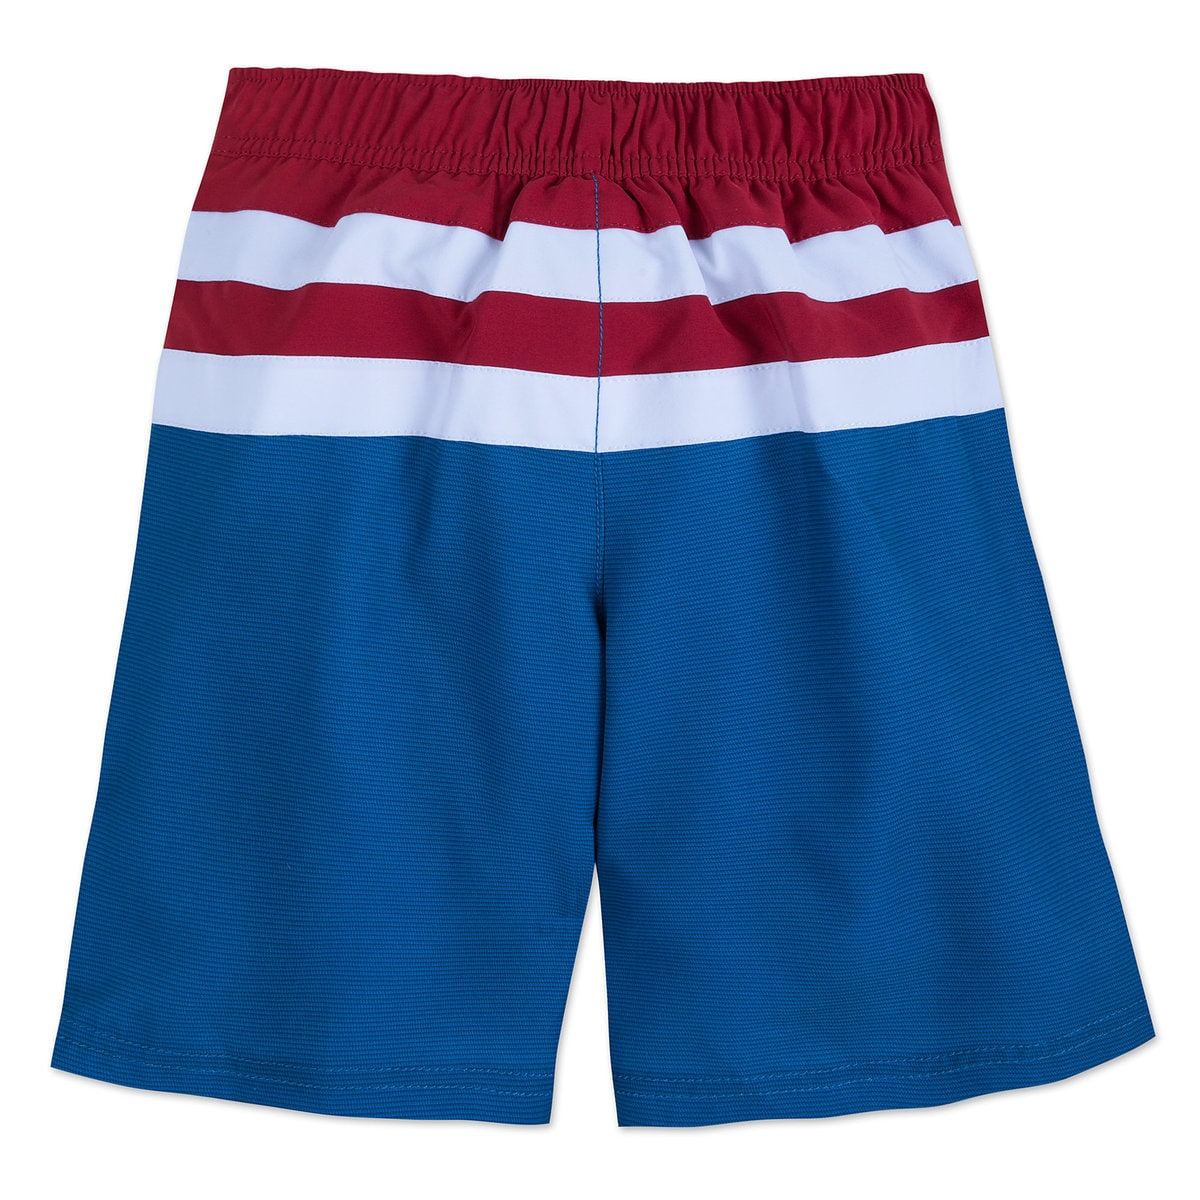 8ae5a1d947 Product Image of Captain America Swim Trunks for Kids # 3